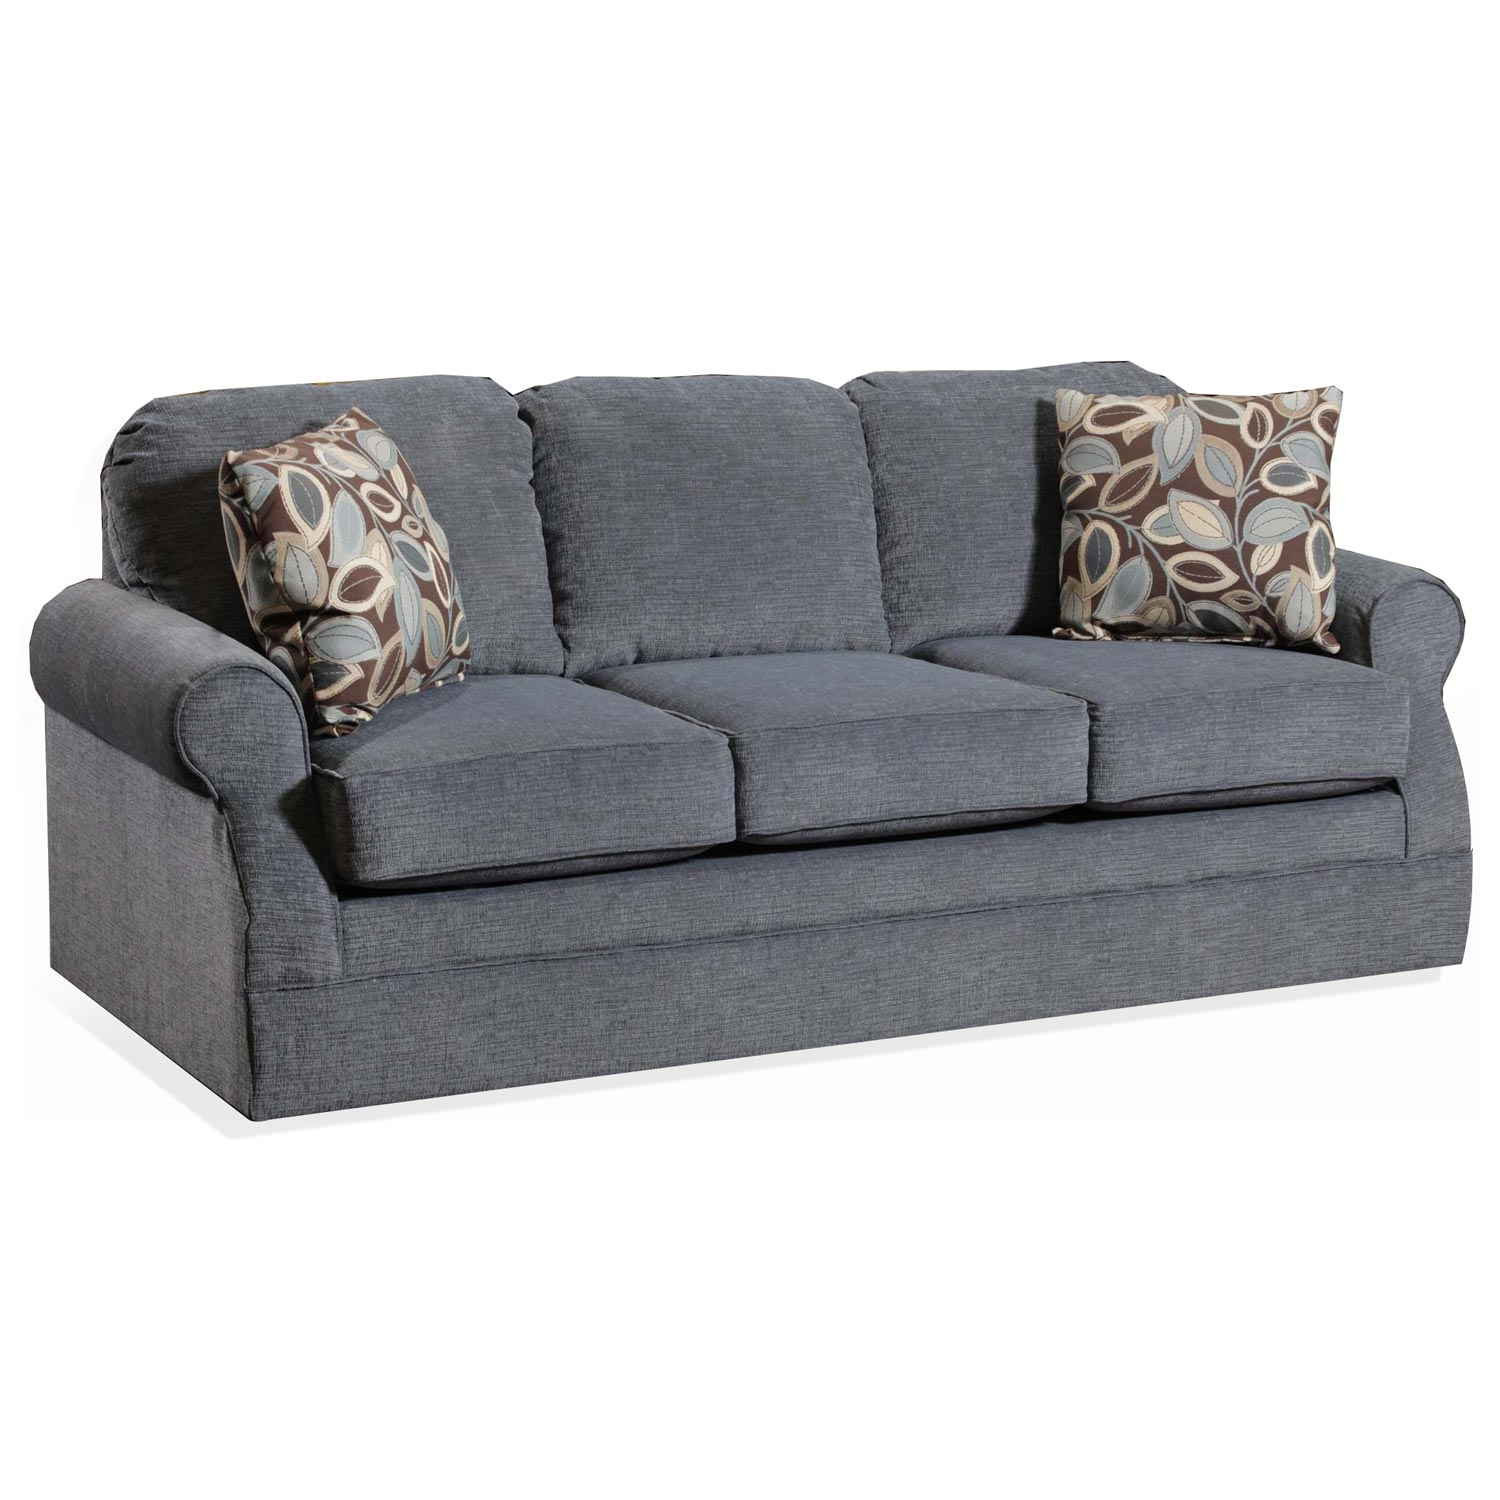 Bixby Contemporary Sofa - Rolled Arms, Textura Blue Fabric